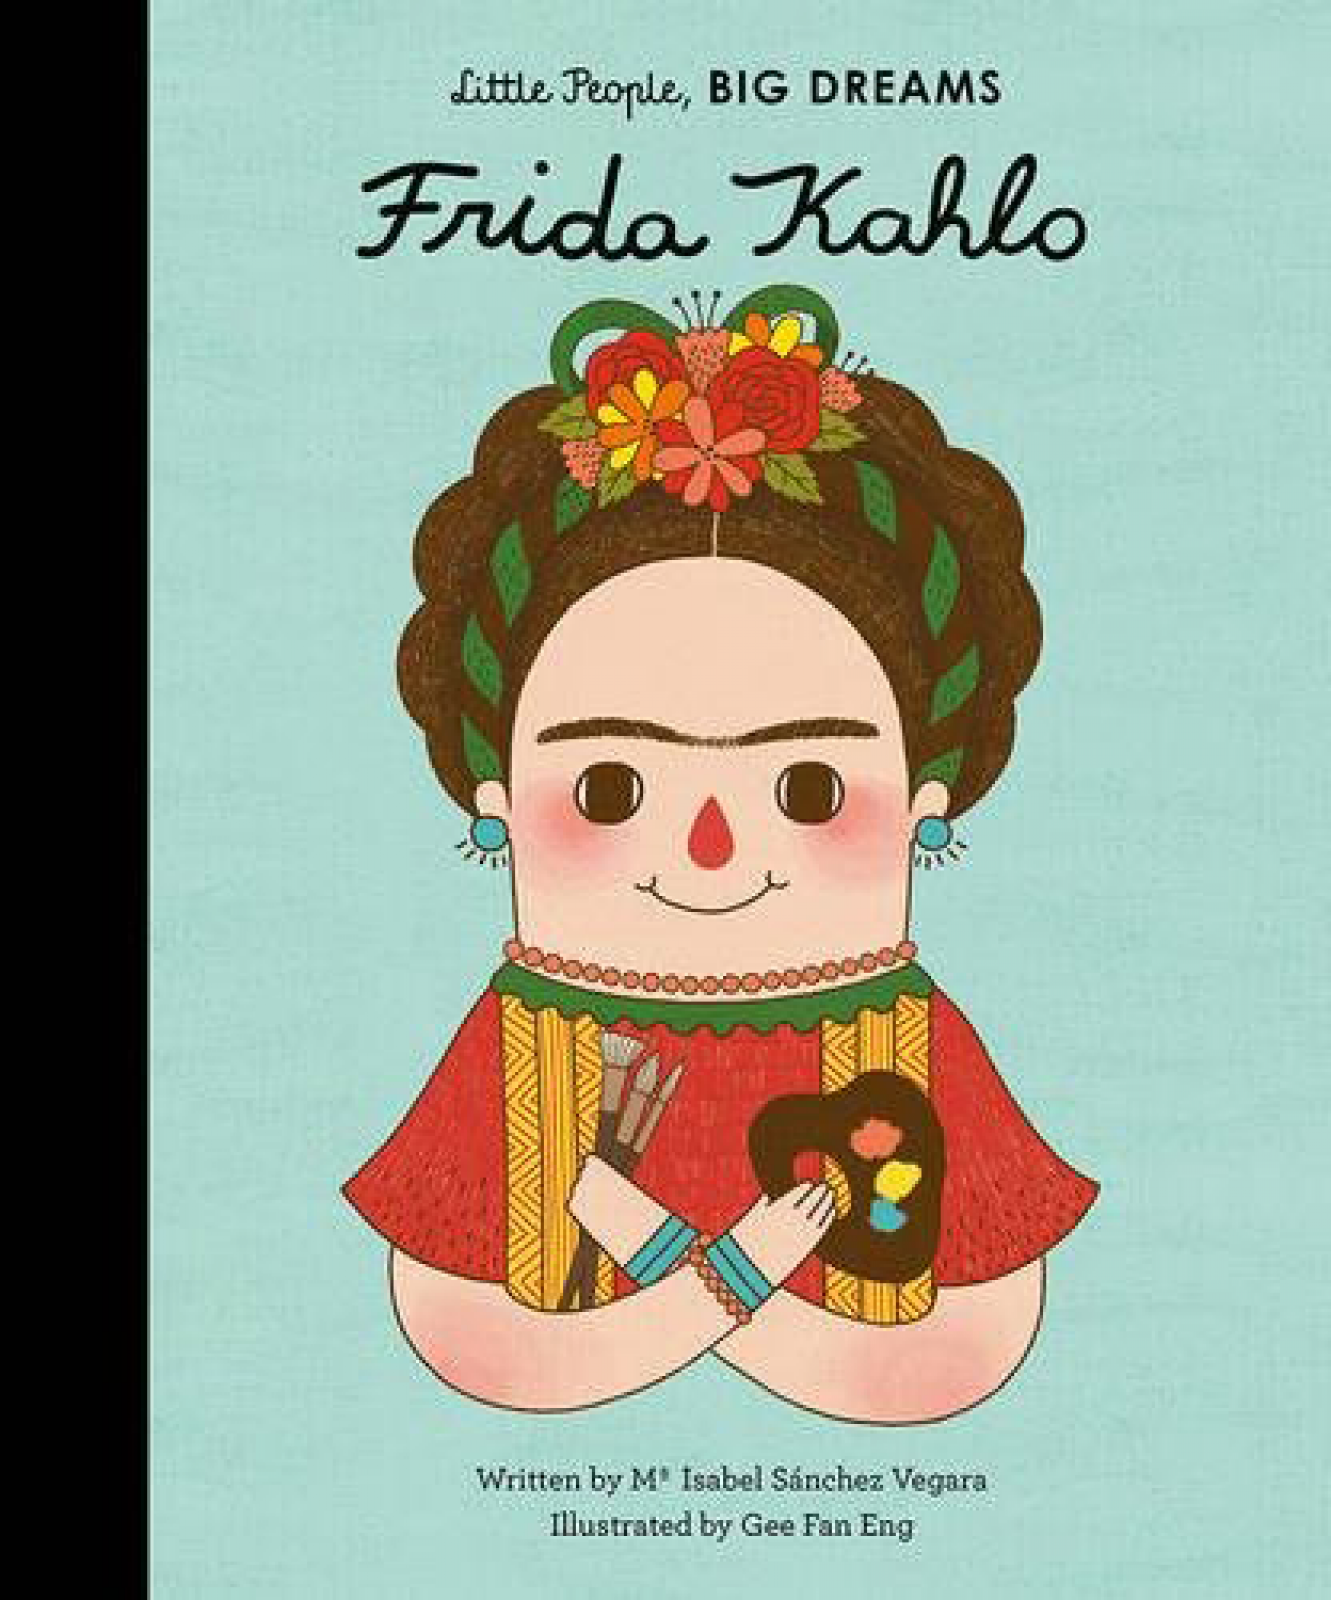 Frida Kahlo: Little People Big Dreams Hardback Book thumbnails